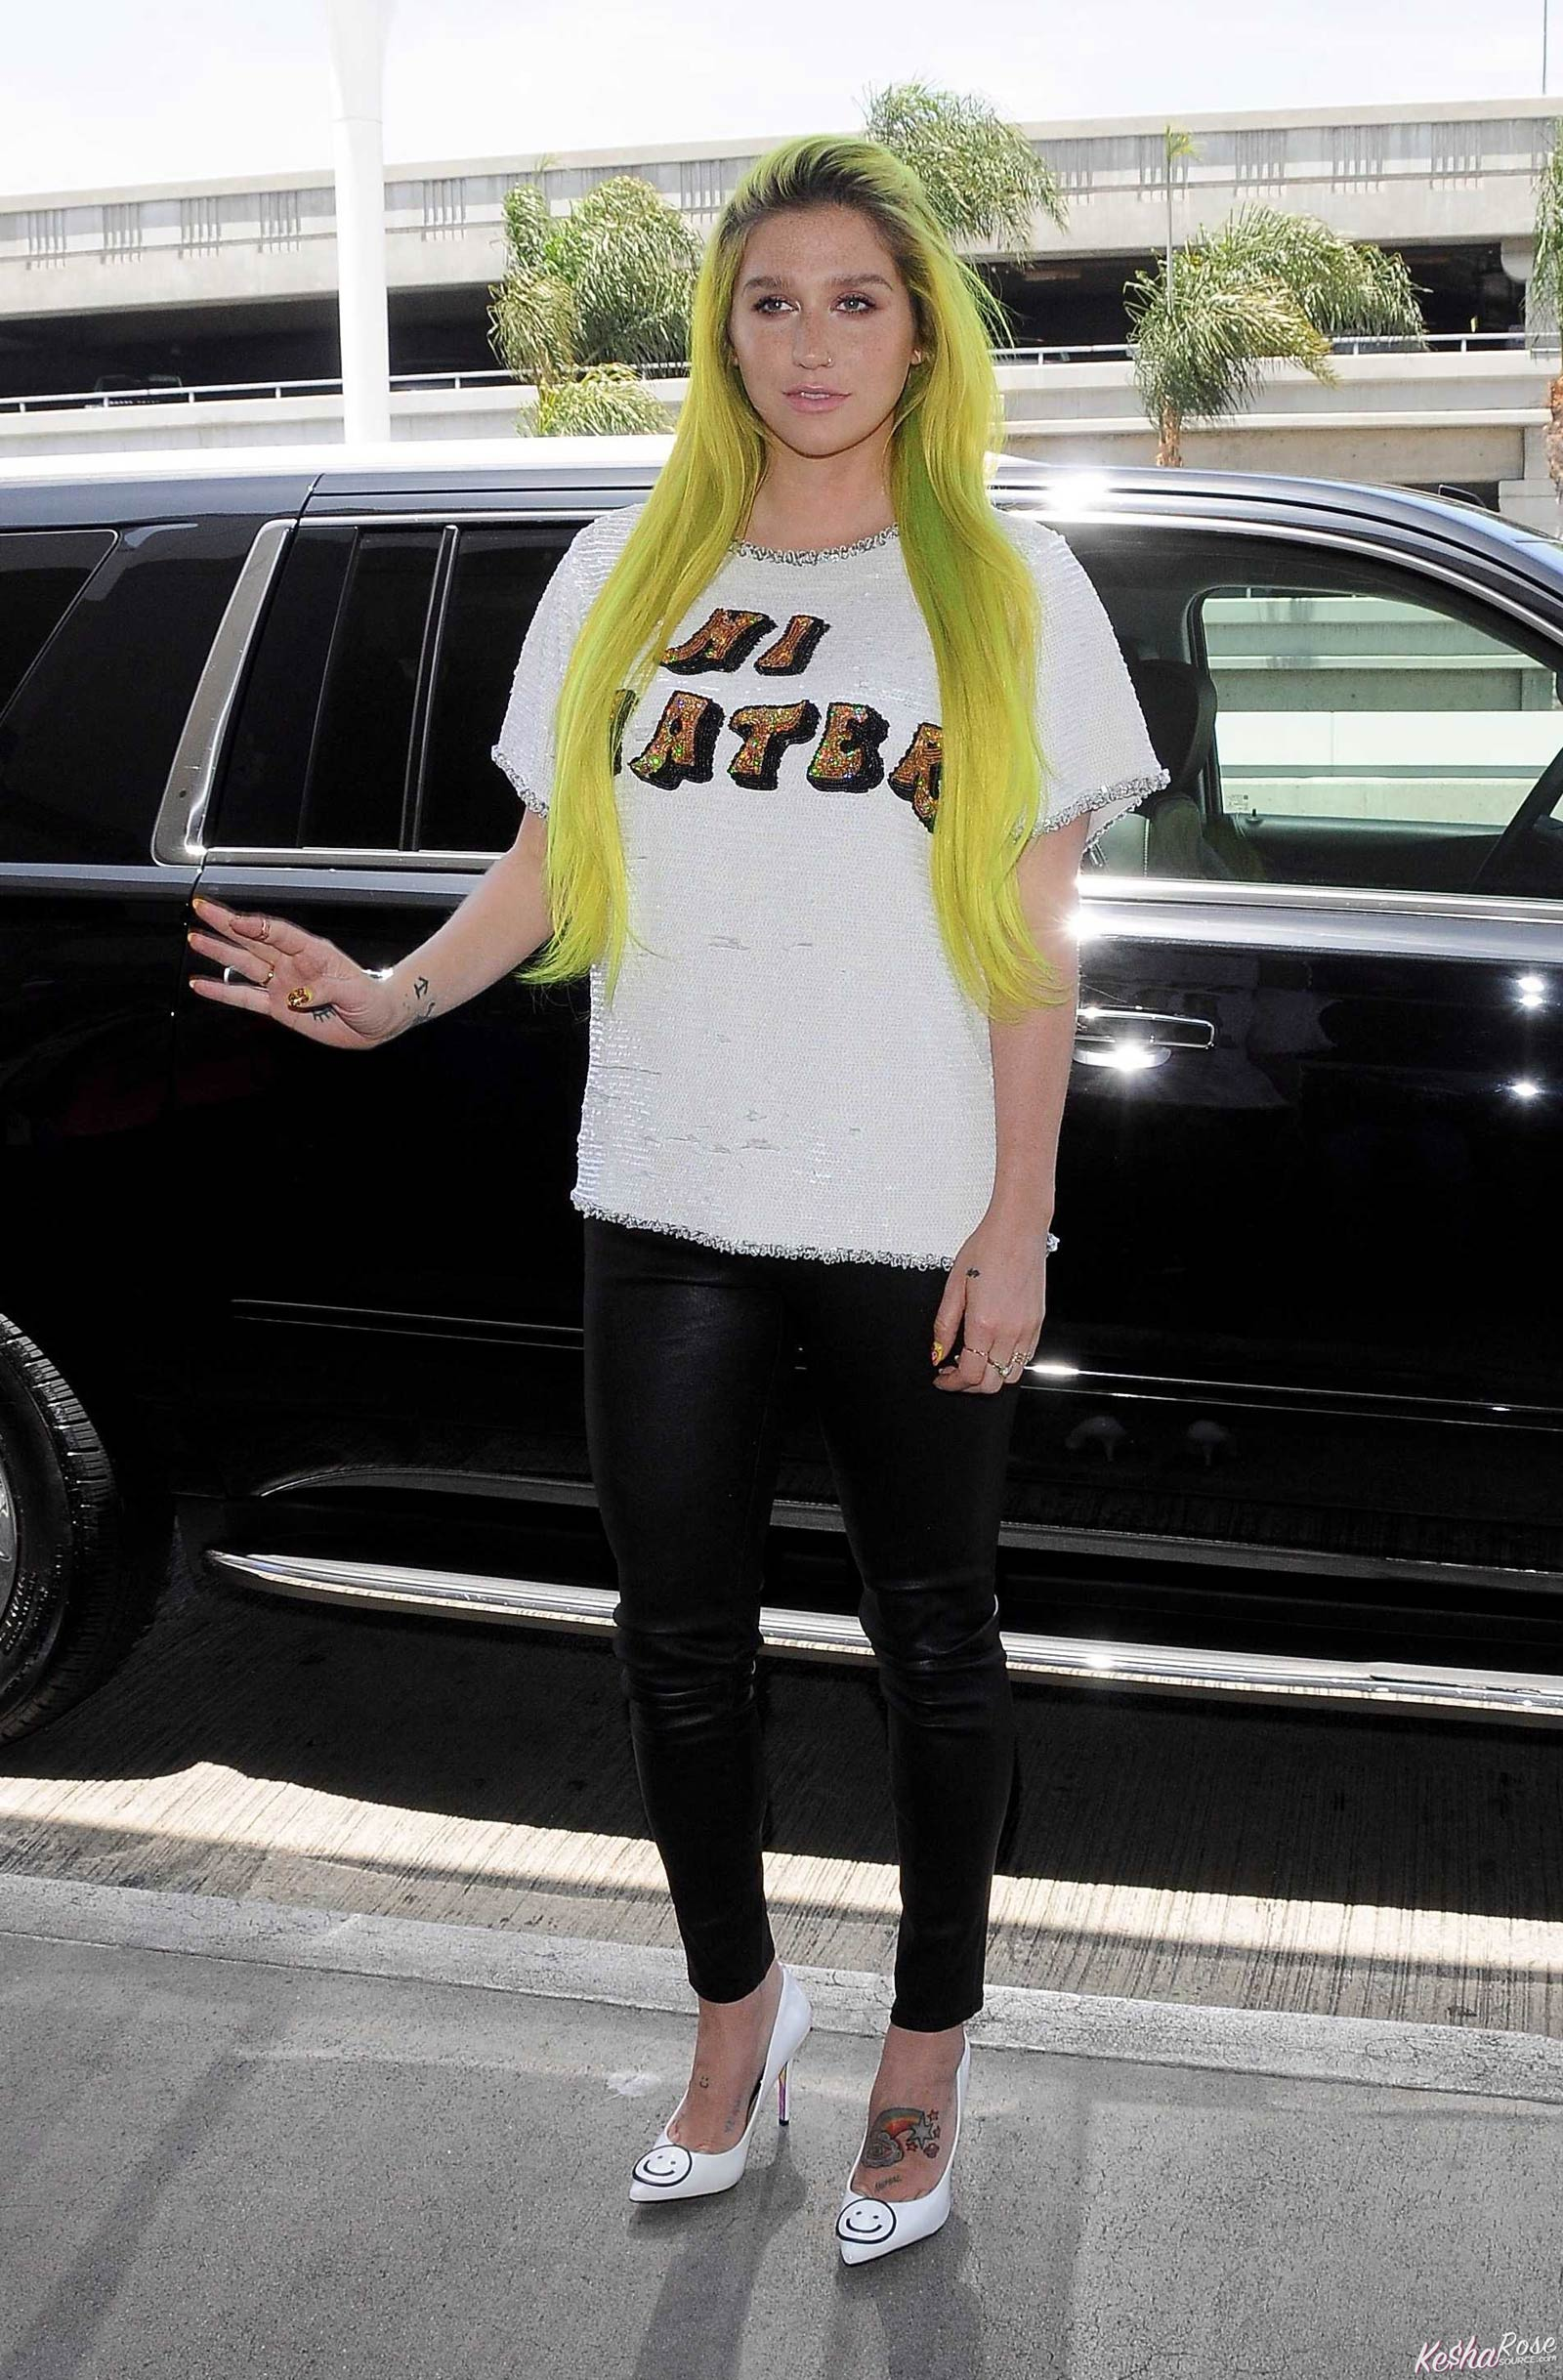 Kesha departing on a flight at LAX airport